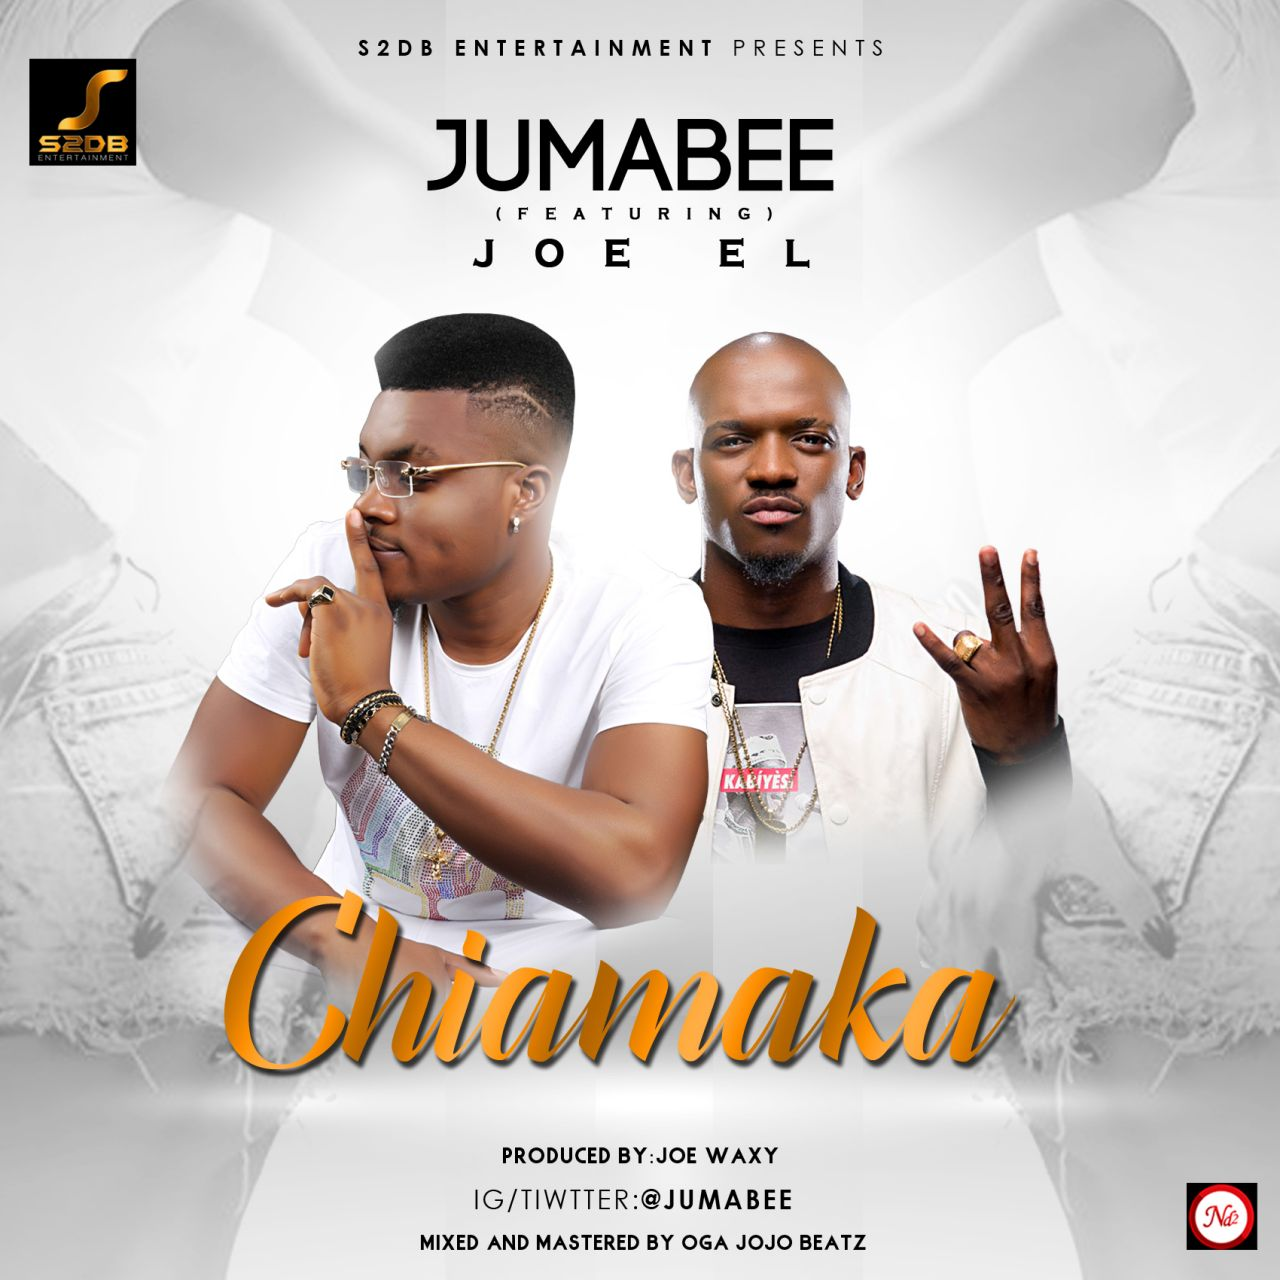 Jumabee ft. Joe El - Chiamaka